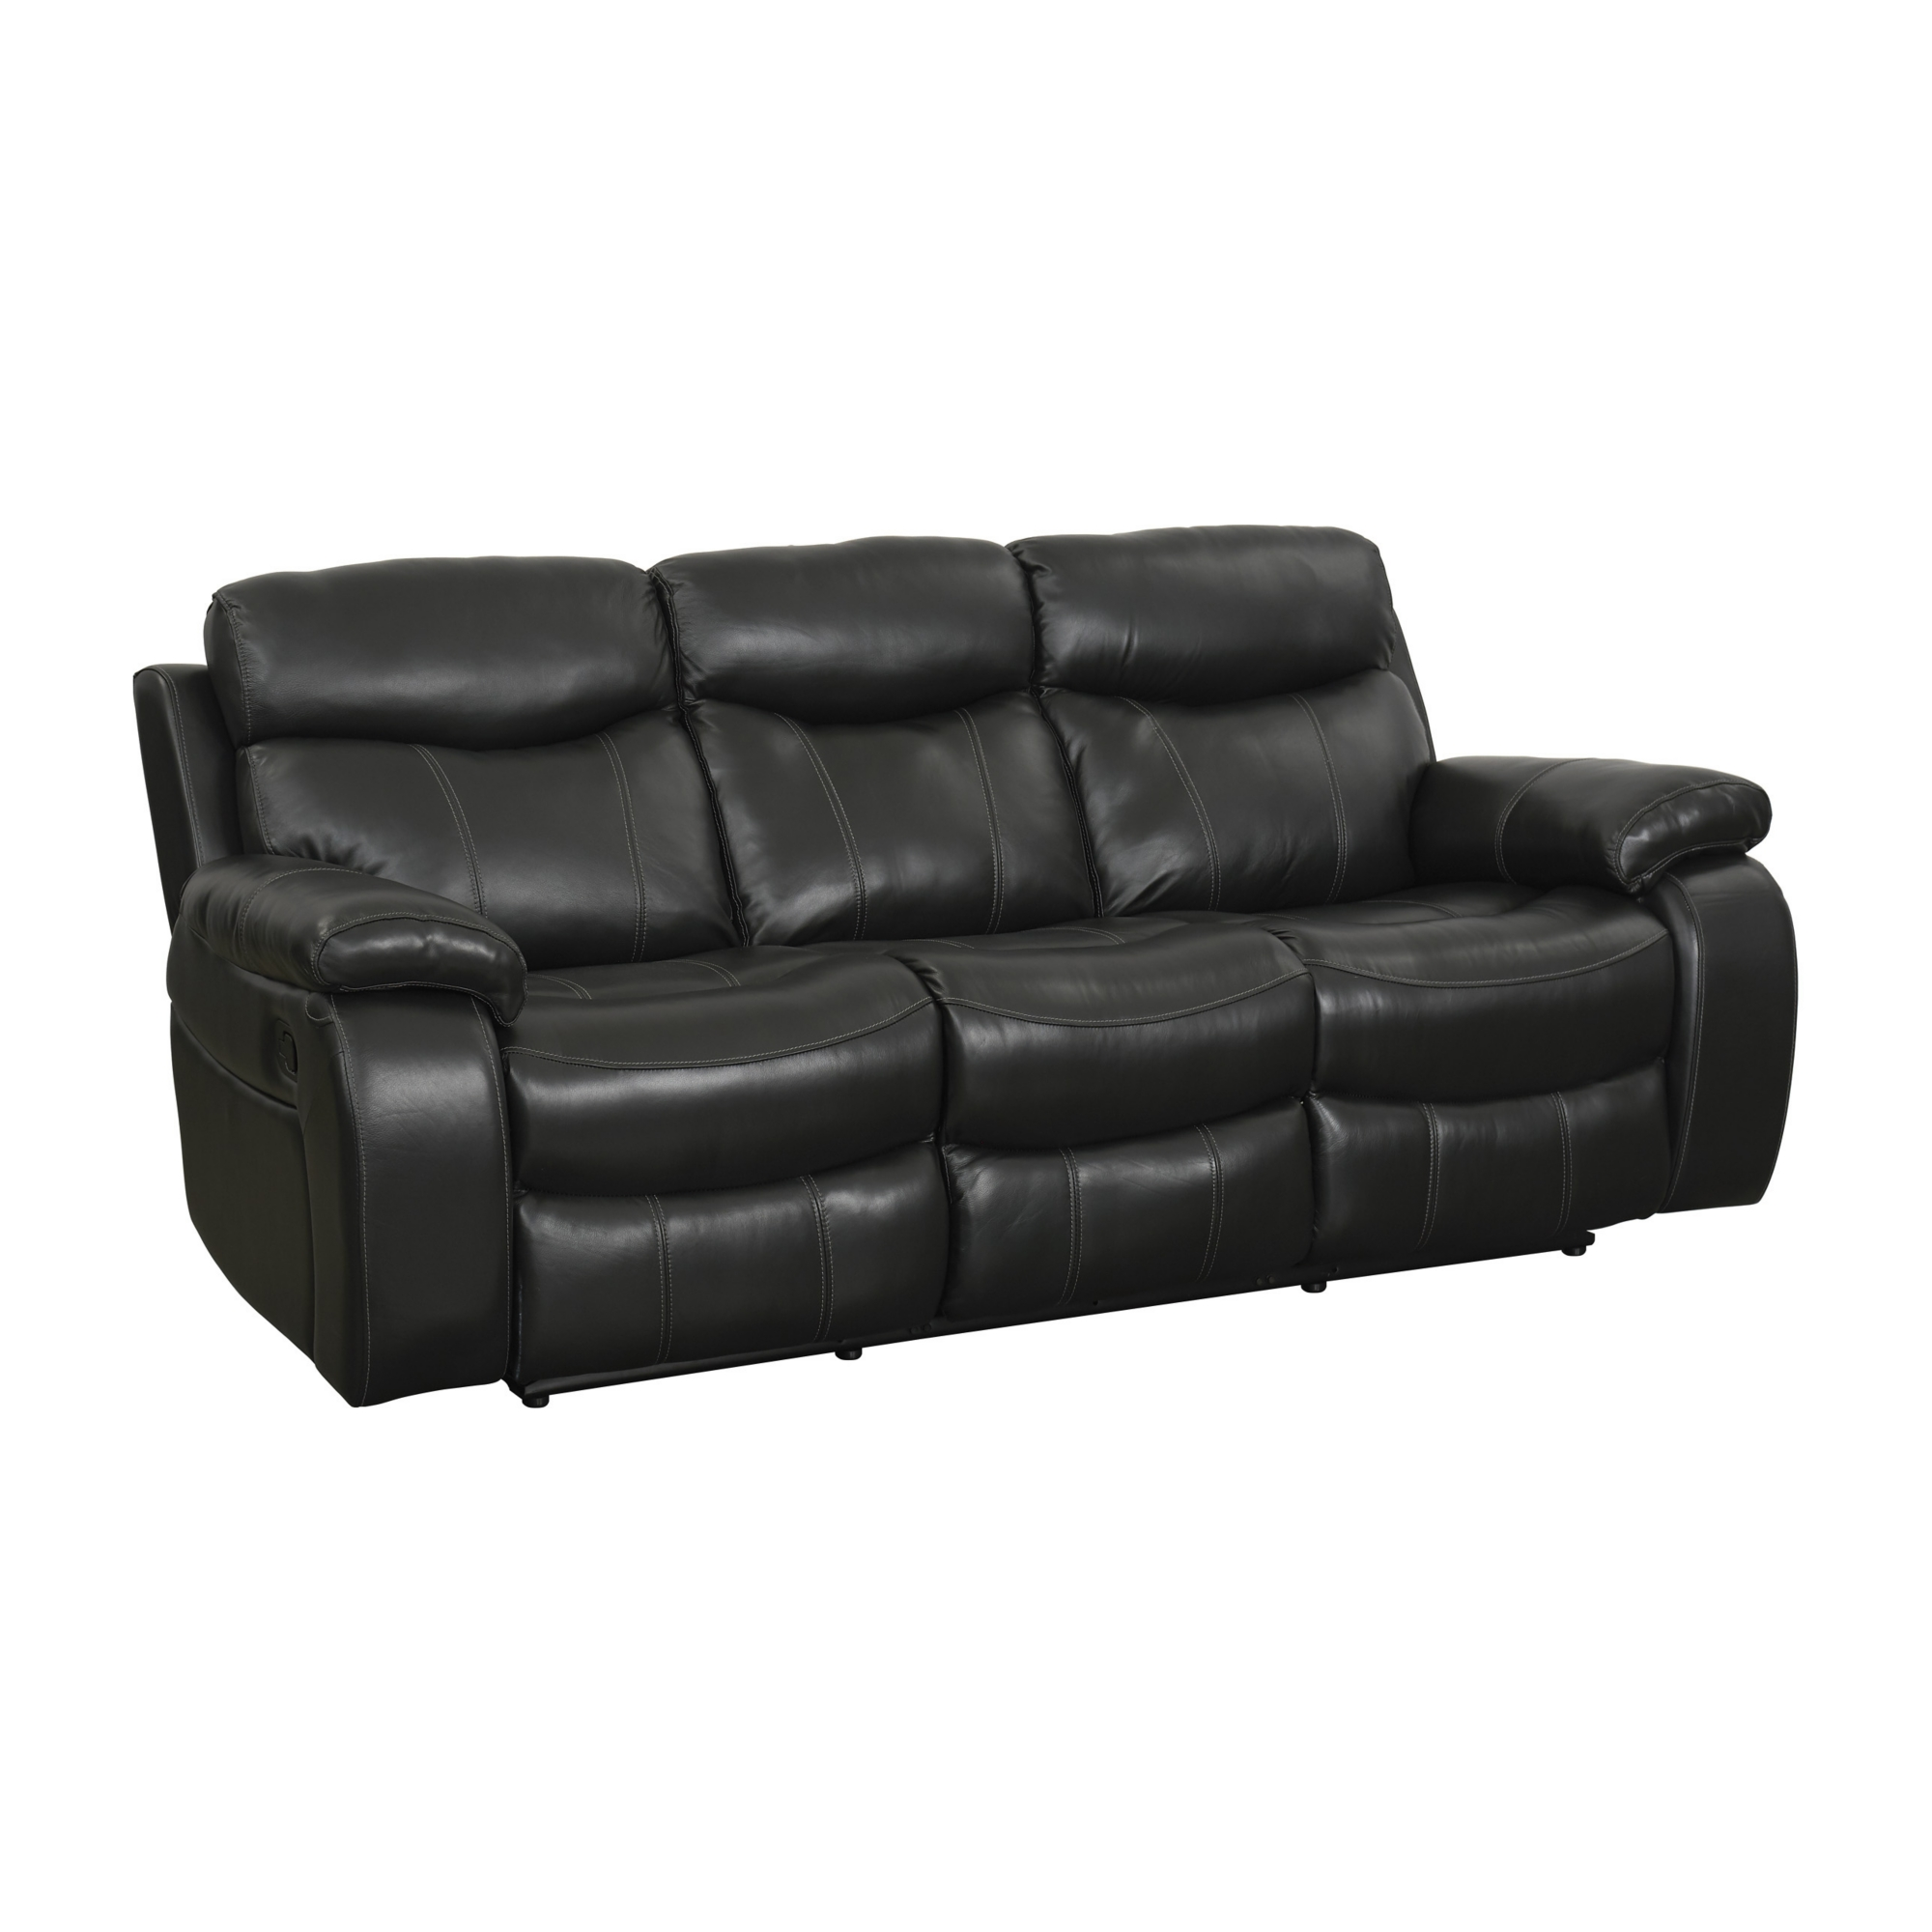 and clearwater brothers bar finest in park matter florid home pinellas myers stores warehouse naples fl stools beautiful sarasota sofa fort for furniture leather with